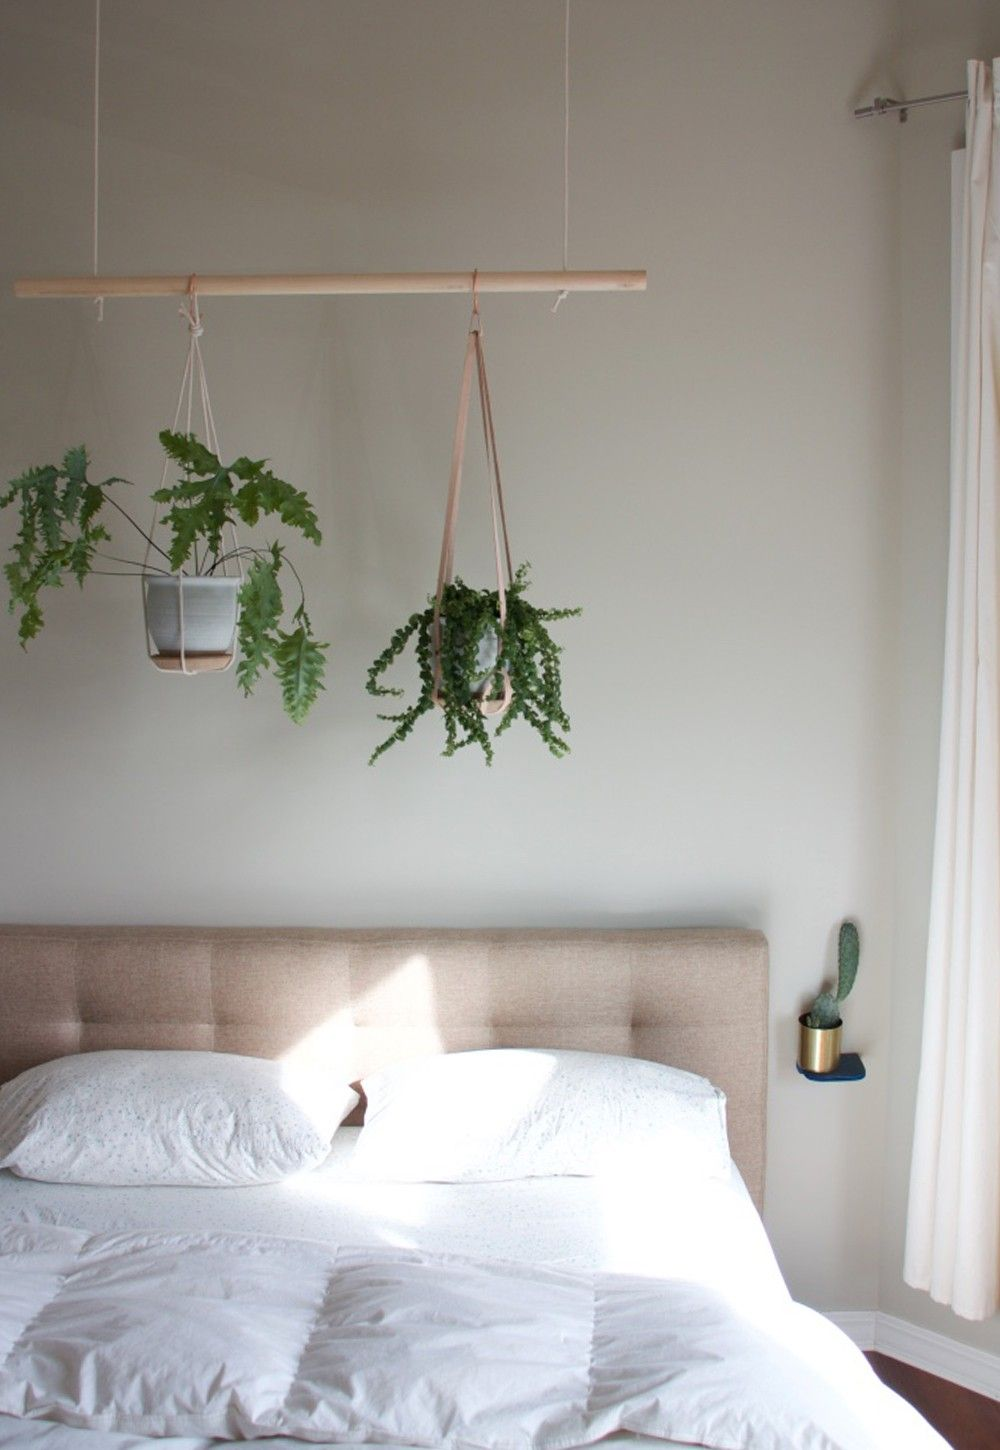 Use The Miracle Gro Indoor Plant Food To Give Your House Plants Extra Boost They Need Grow It S Perfect For Creating This Hanging Piece